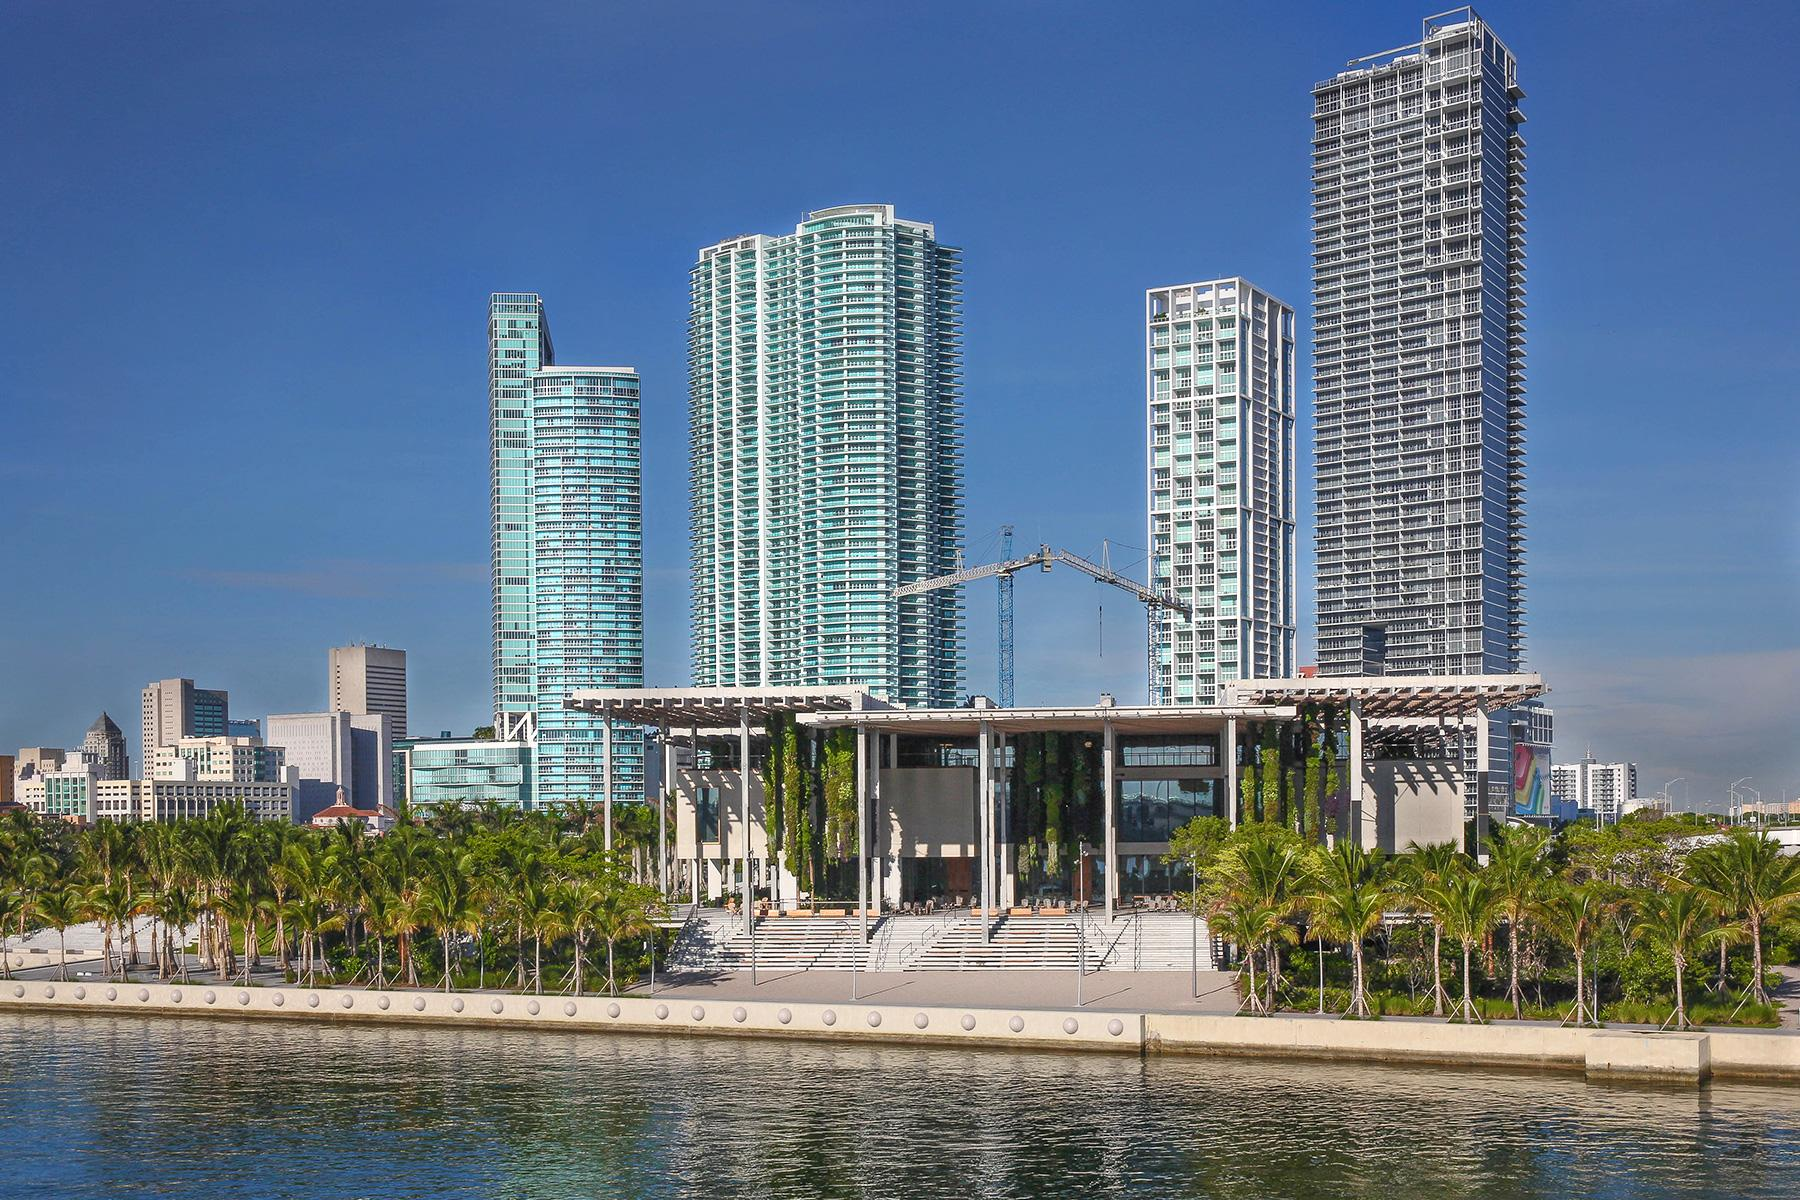 Miami's 12 Most Instagrammable Locations